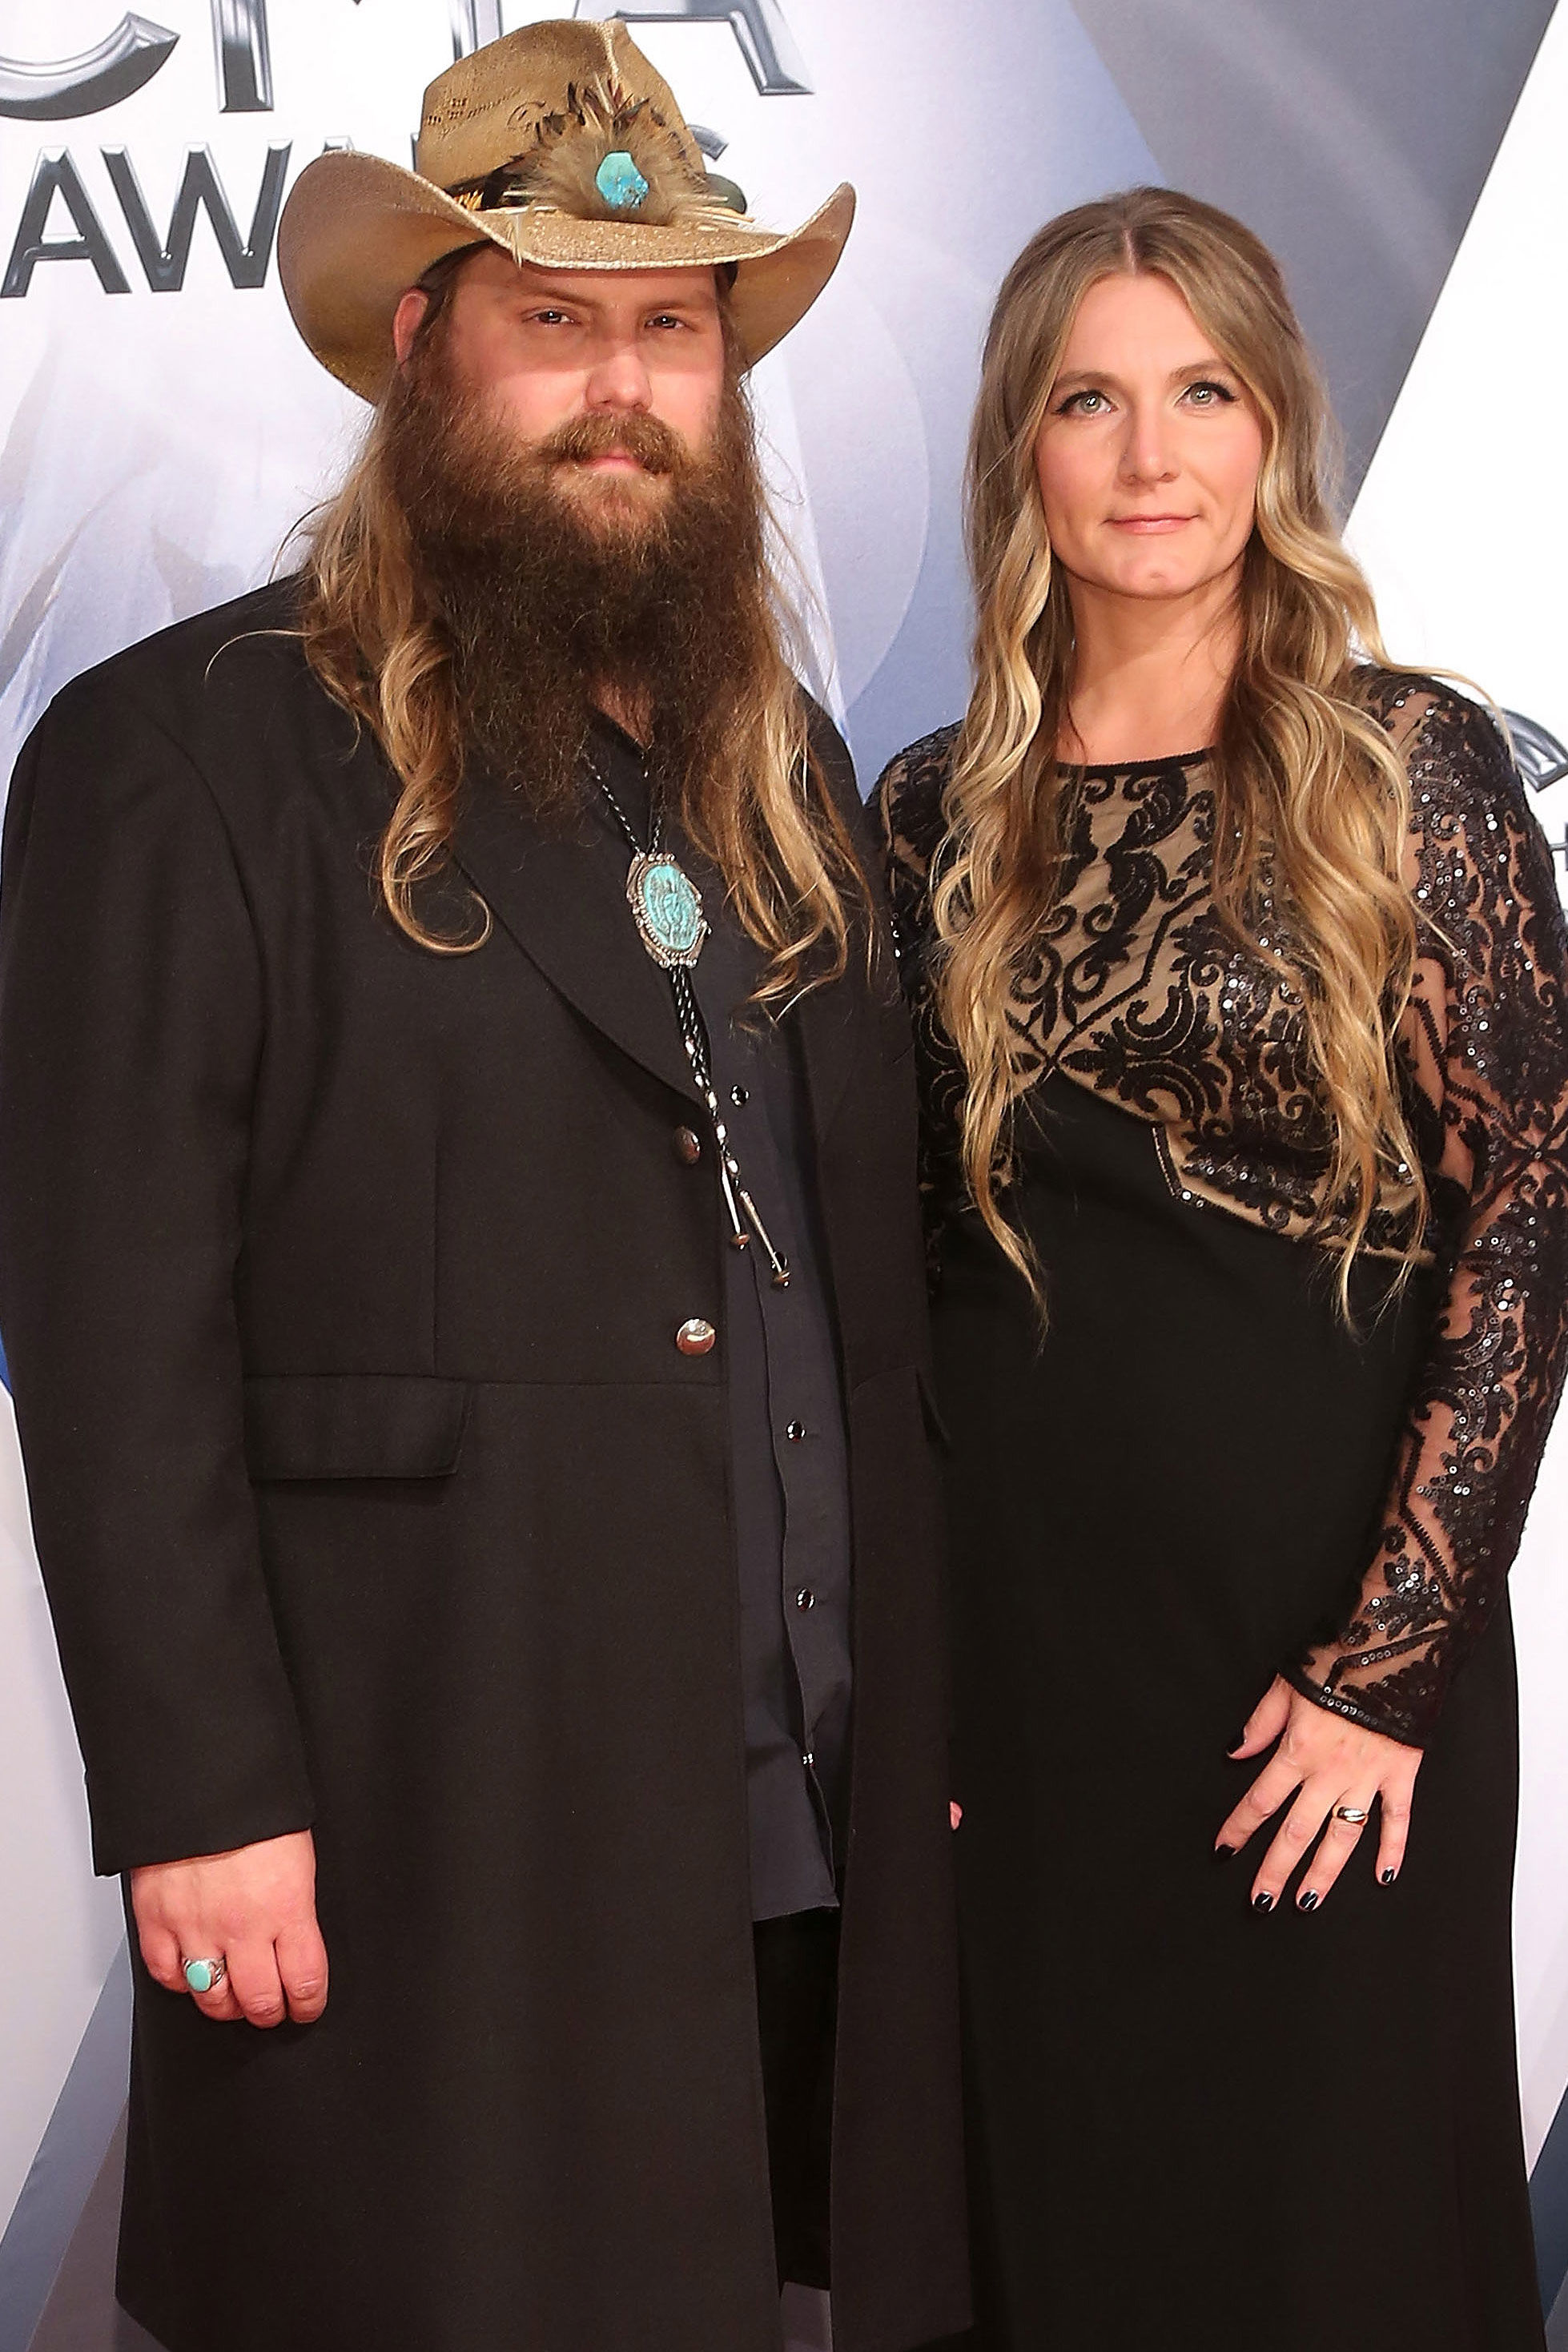 Chris Stapleton's Wife Shares First Photo of Twins, Reveals They Were Born 'More Than a Month Early'